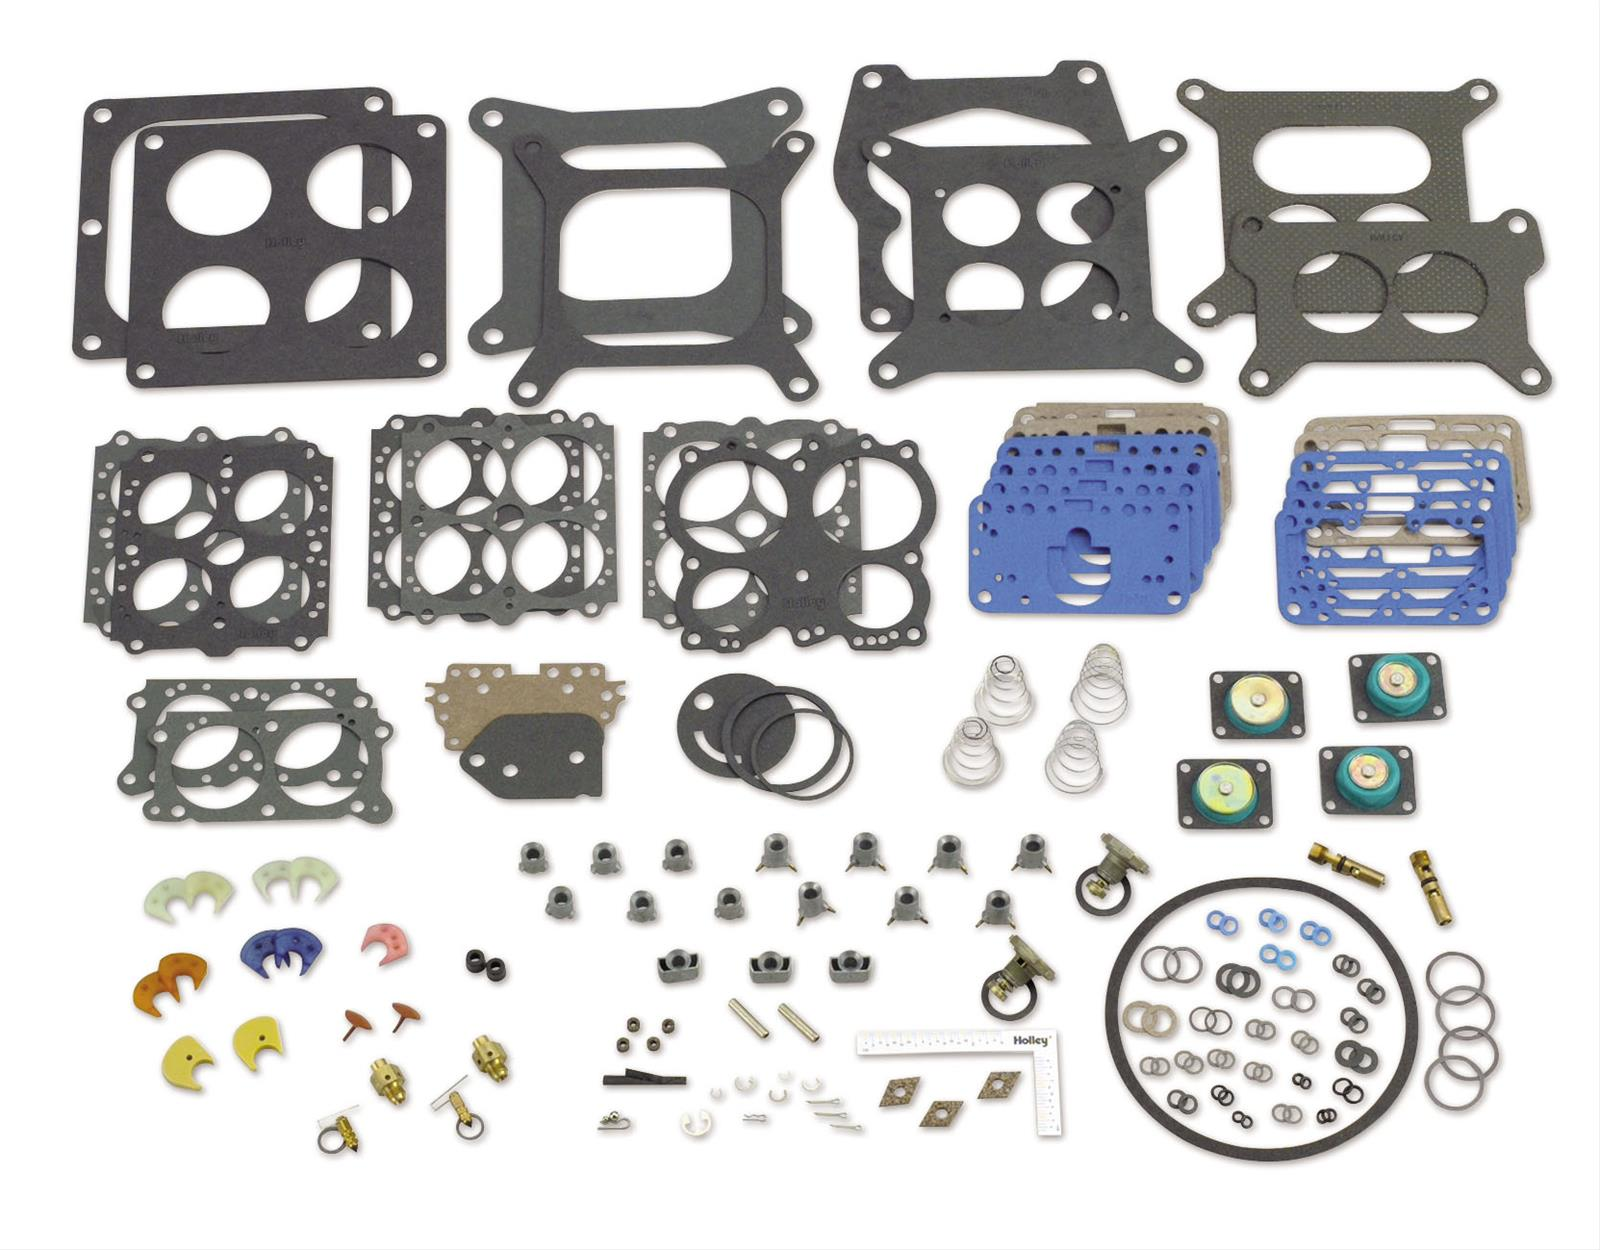 hight resolution of holley trick kits 37 933 free shipping on orders over 99 at summit racing